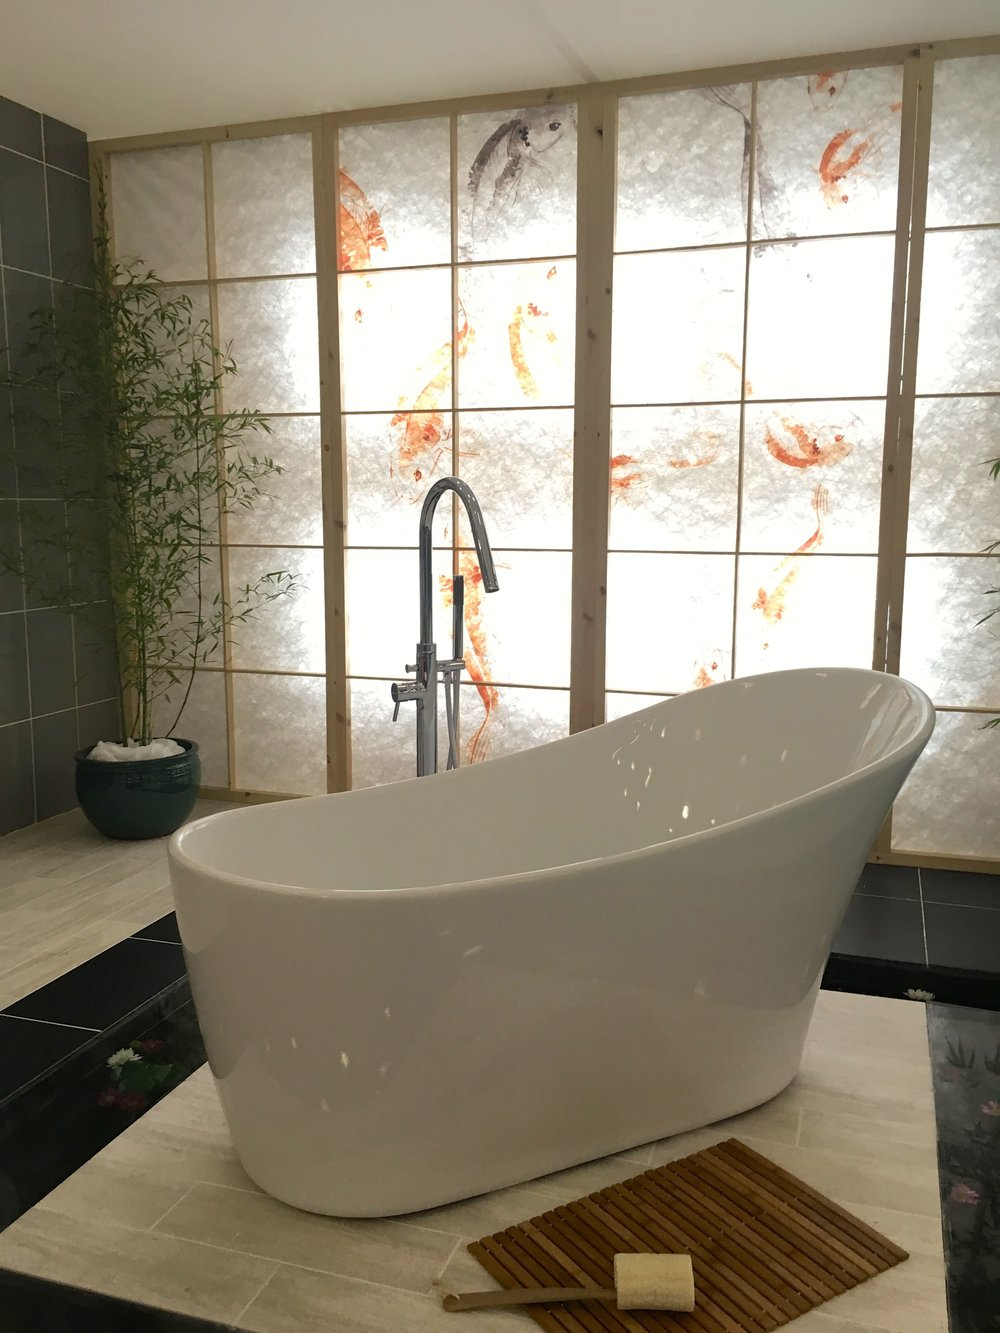 That bath, that screen  - pure gorgeousness